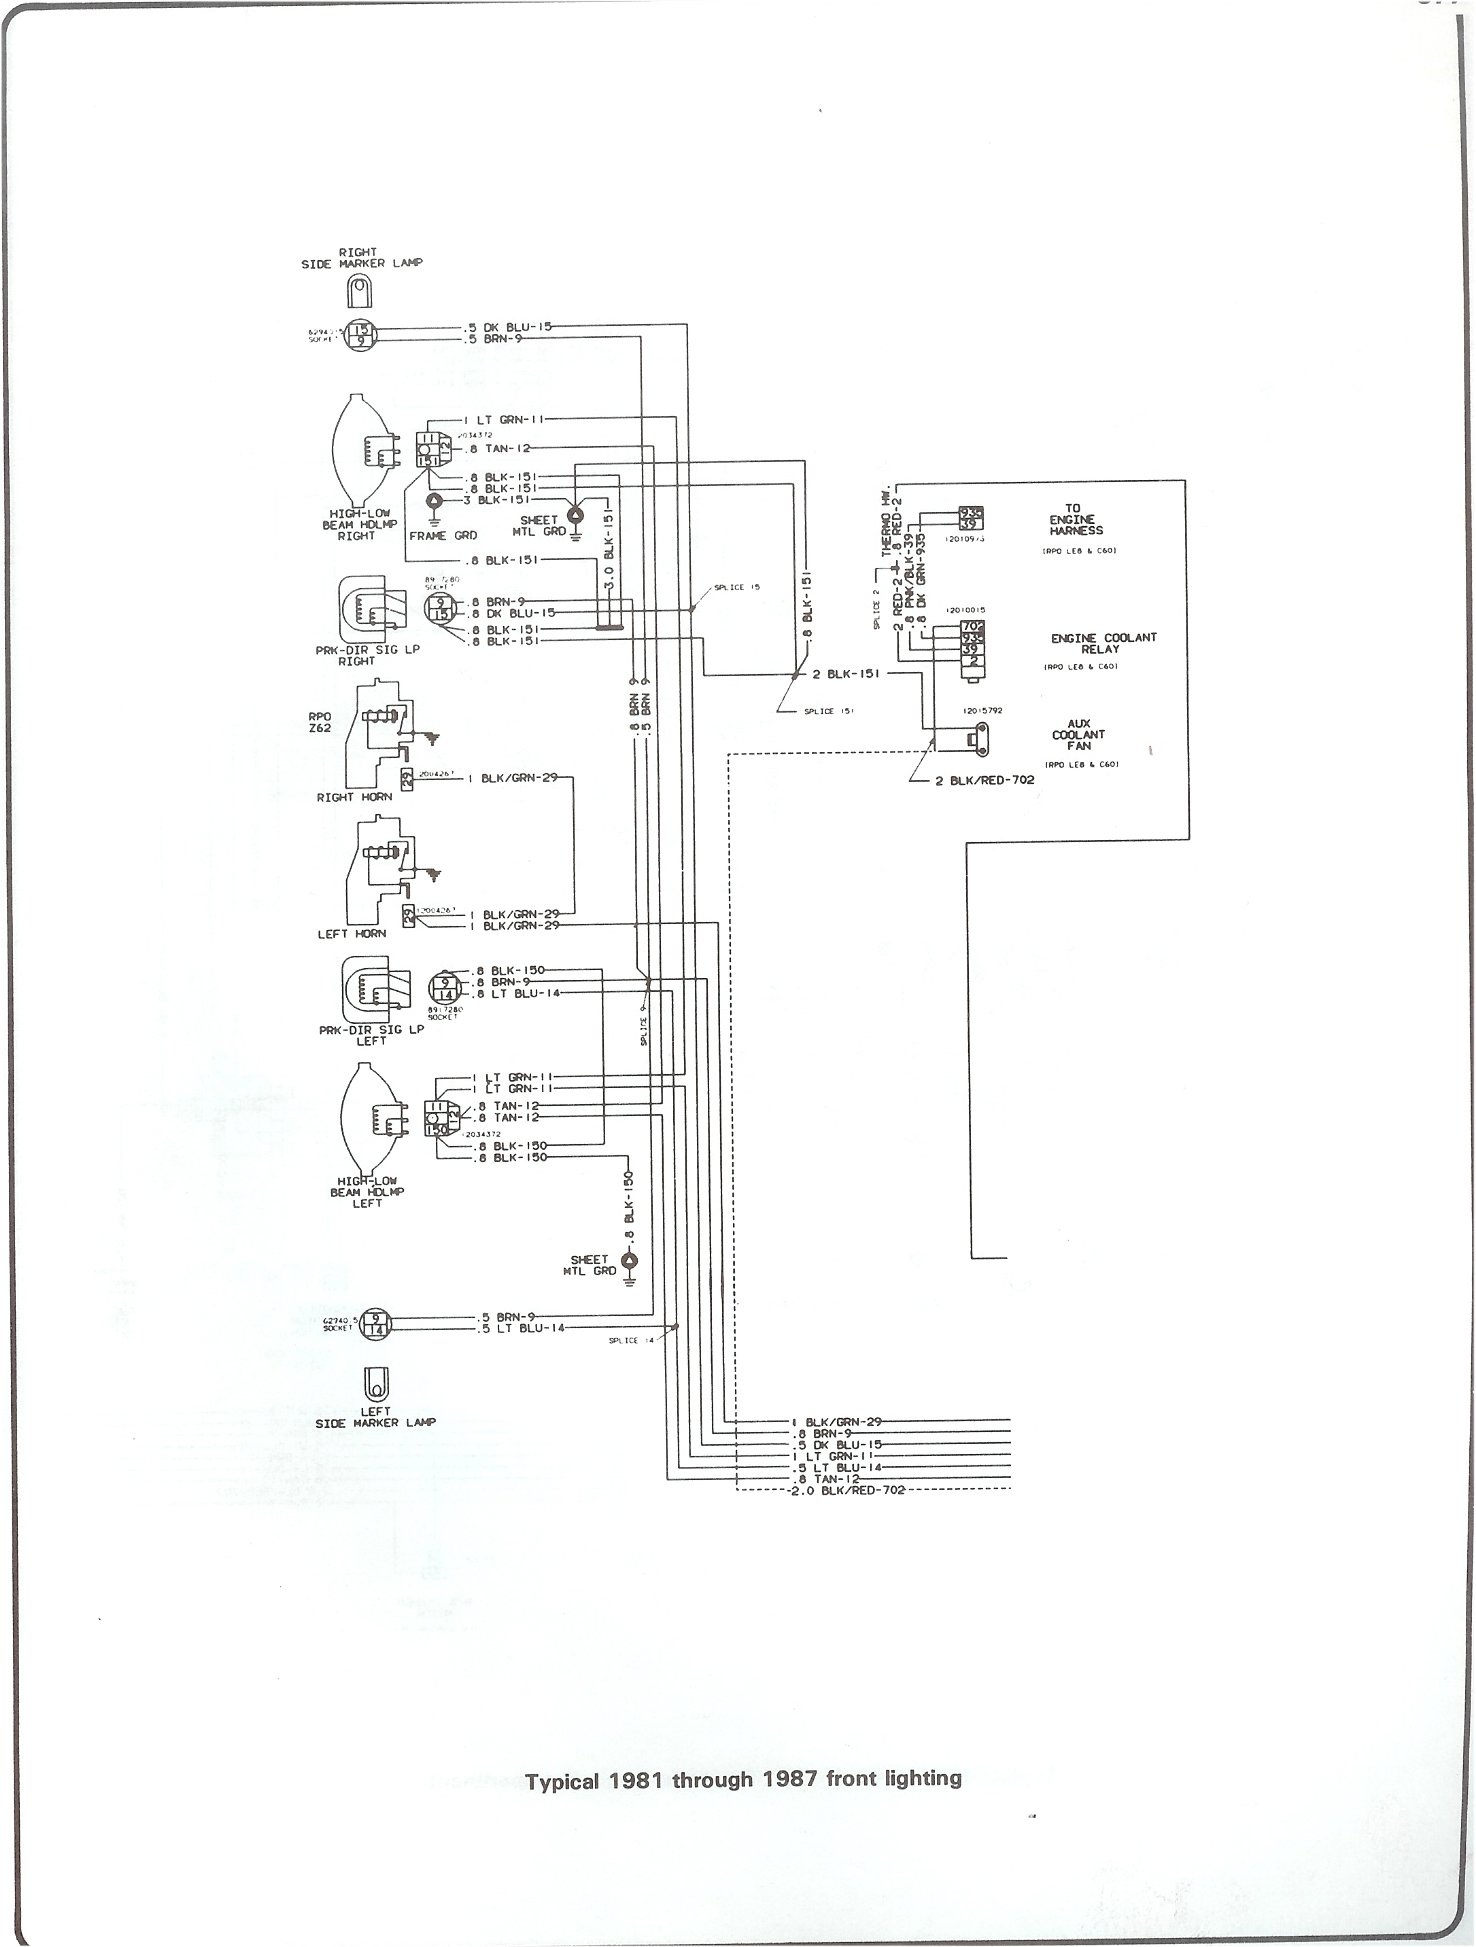 Complete 73-87 Wiring Diagrams on chrysler crossfire wiring schematic, volkswagen jetta wiring schematic, jeep cherokee wiring schematic, ford explorer wiring schematic, nissan frontier wiring schematic, ford expedition wiring schematic, dodge neon wiring schematic, nissan altima wiring schematic, gmc sierra wiring schematic, chevy suburban wiring schematic, dodge ram wiring schematic, ford excursion wiring schematic, ford f350 wiring schematic, 1999 chevy blazer wiring schematic, dodge durango wiring schematic, ford f150 wiring schematic, honda accord wiring schematic, ford e450 wiring schematic, chevy column wiring schematic, gmc savana wiring schematic,